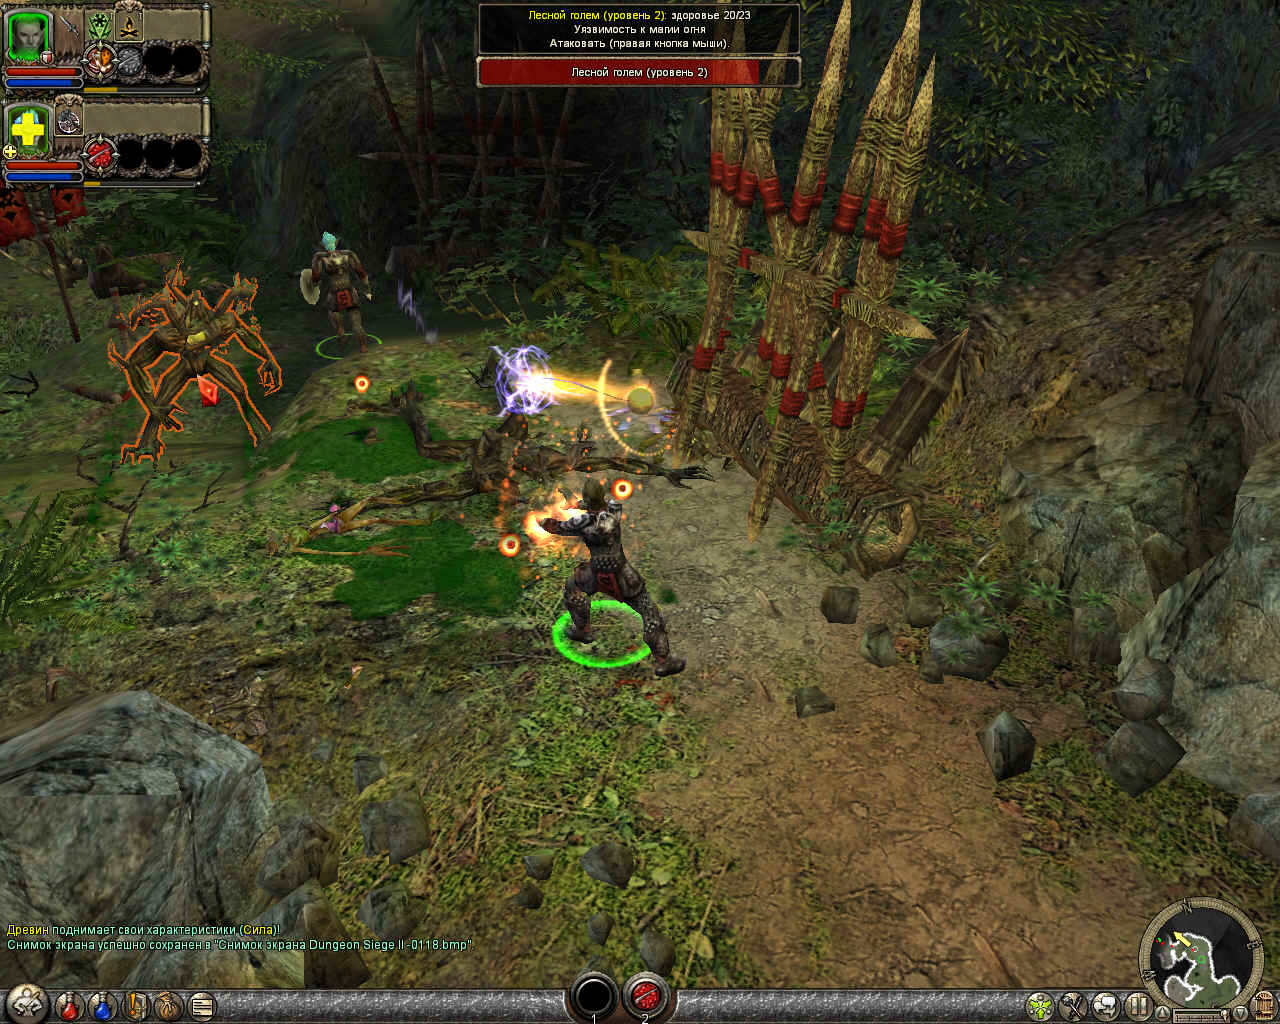 Dungeon siege: throne of agony для psp и ppsspp скачать с облако.